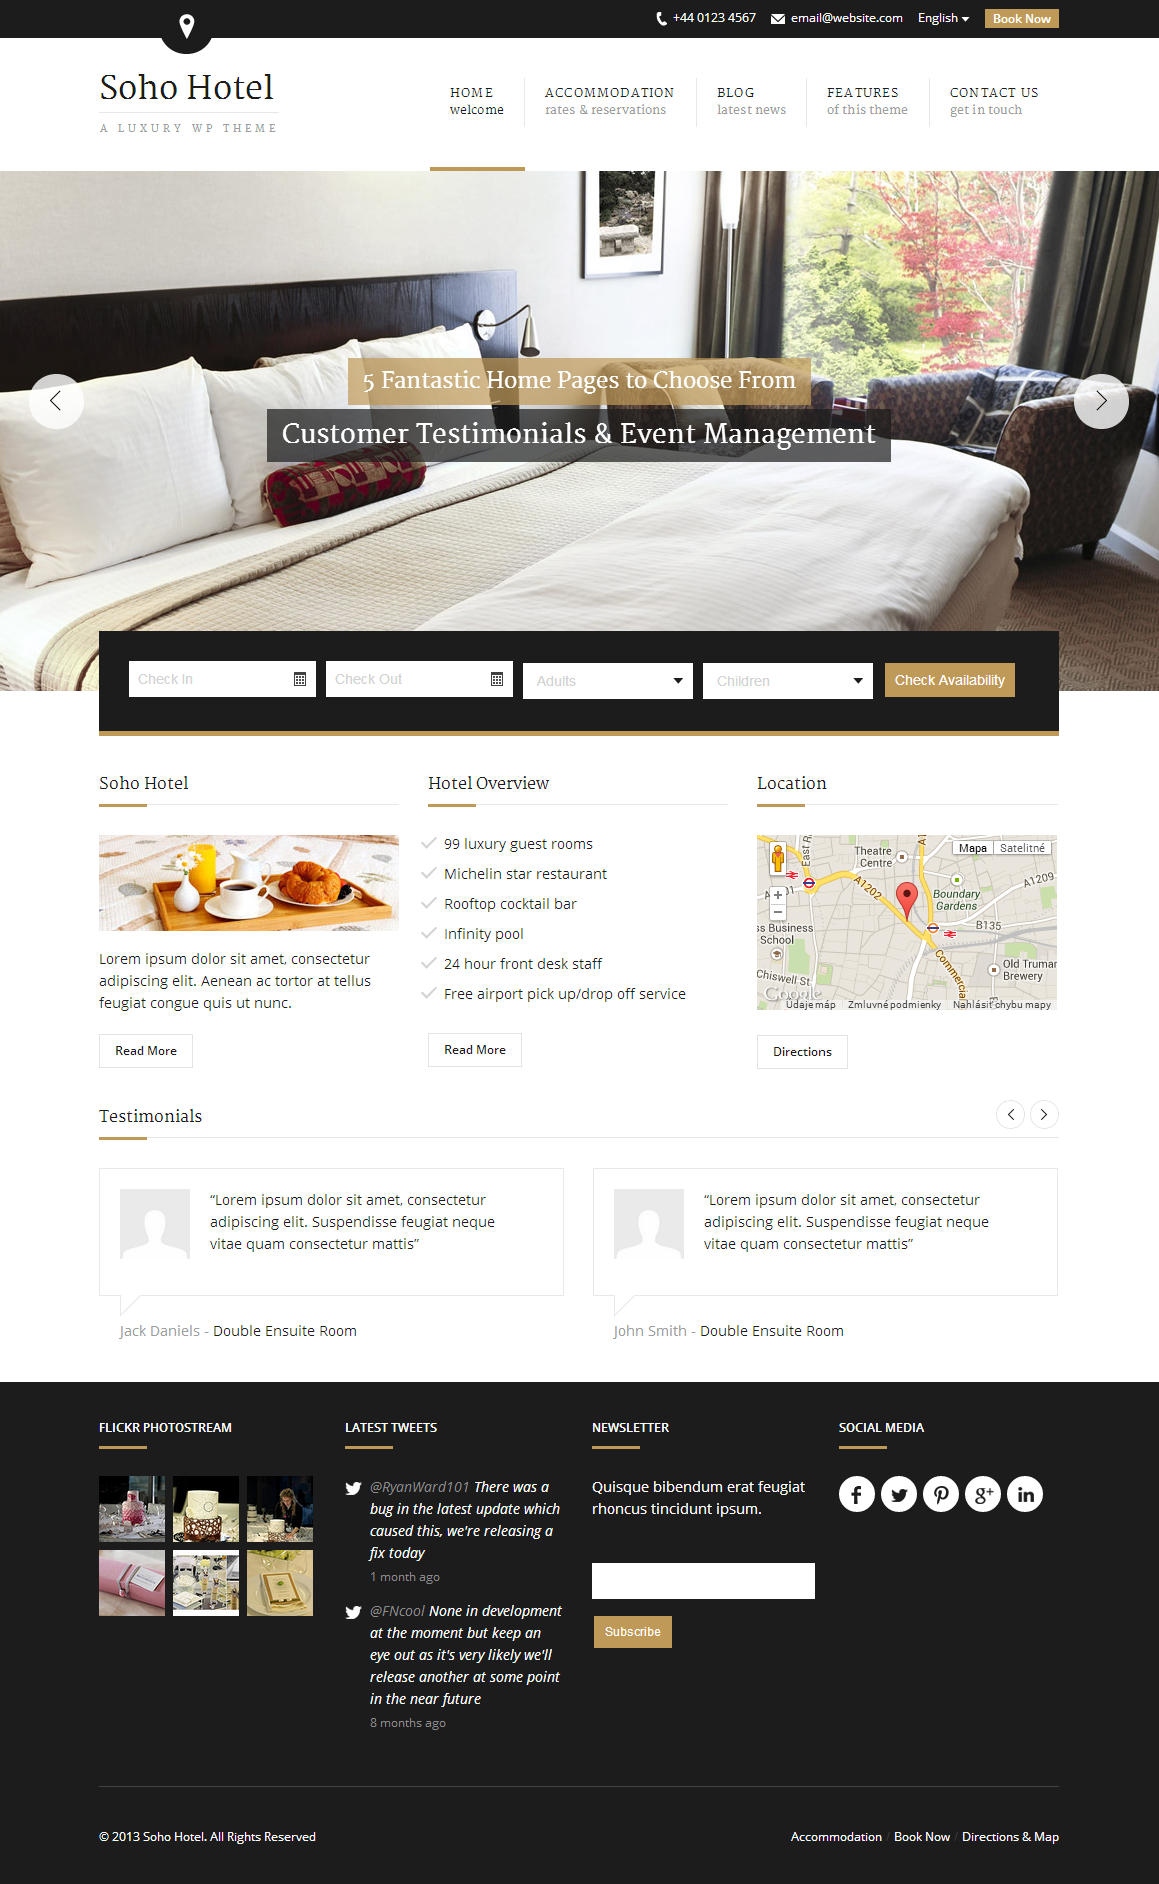 Soho Hotel A Luxury WP Theme